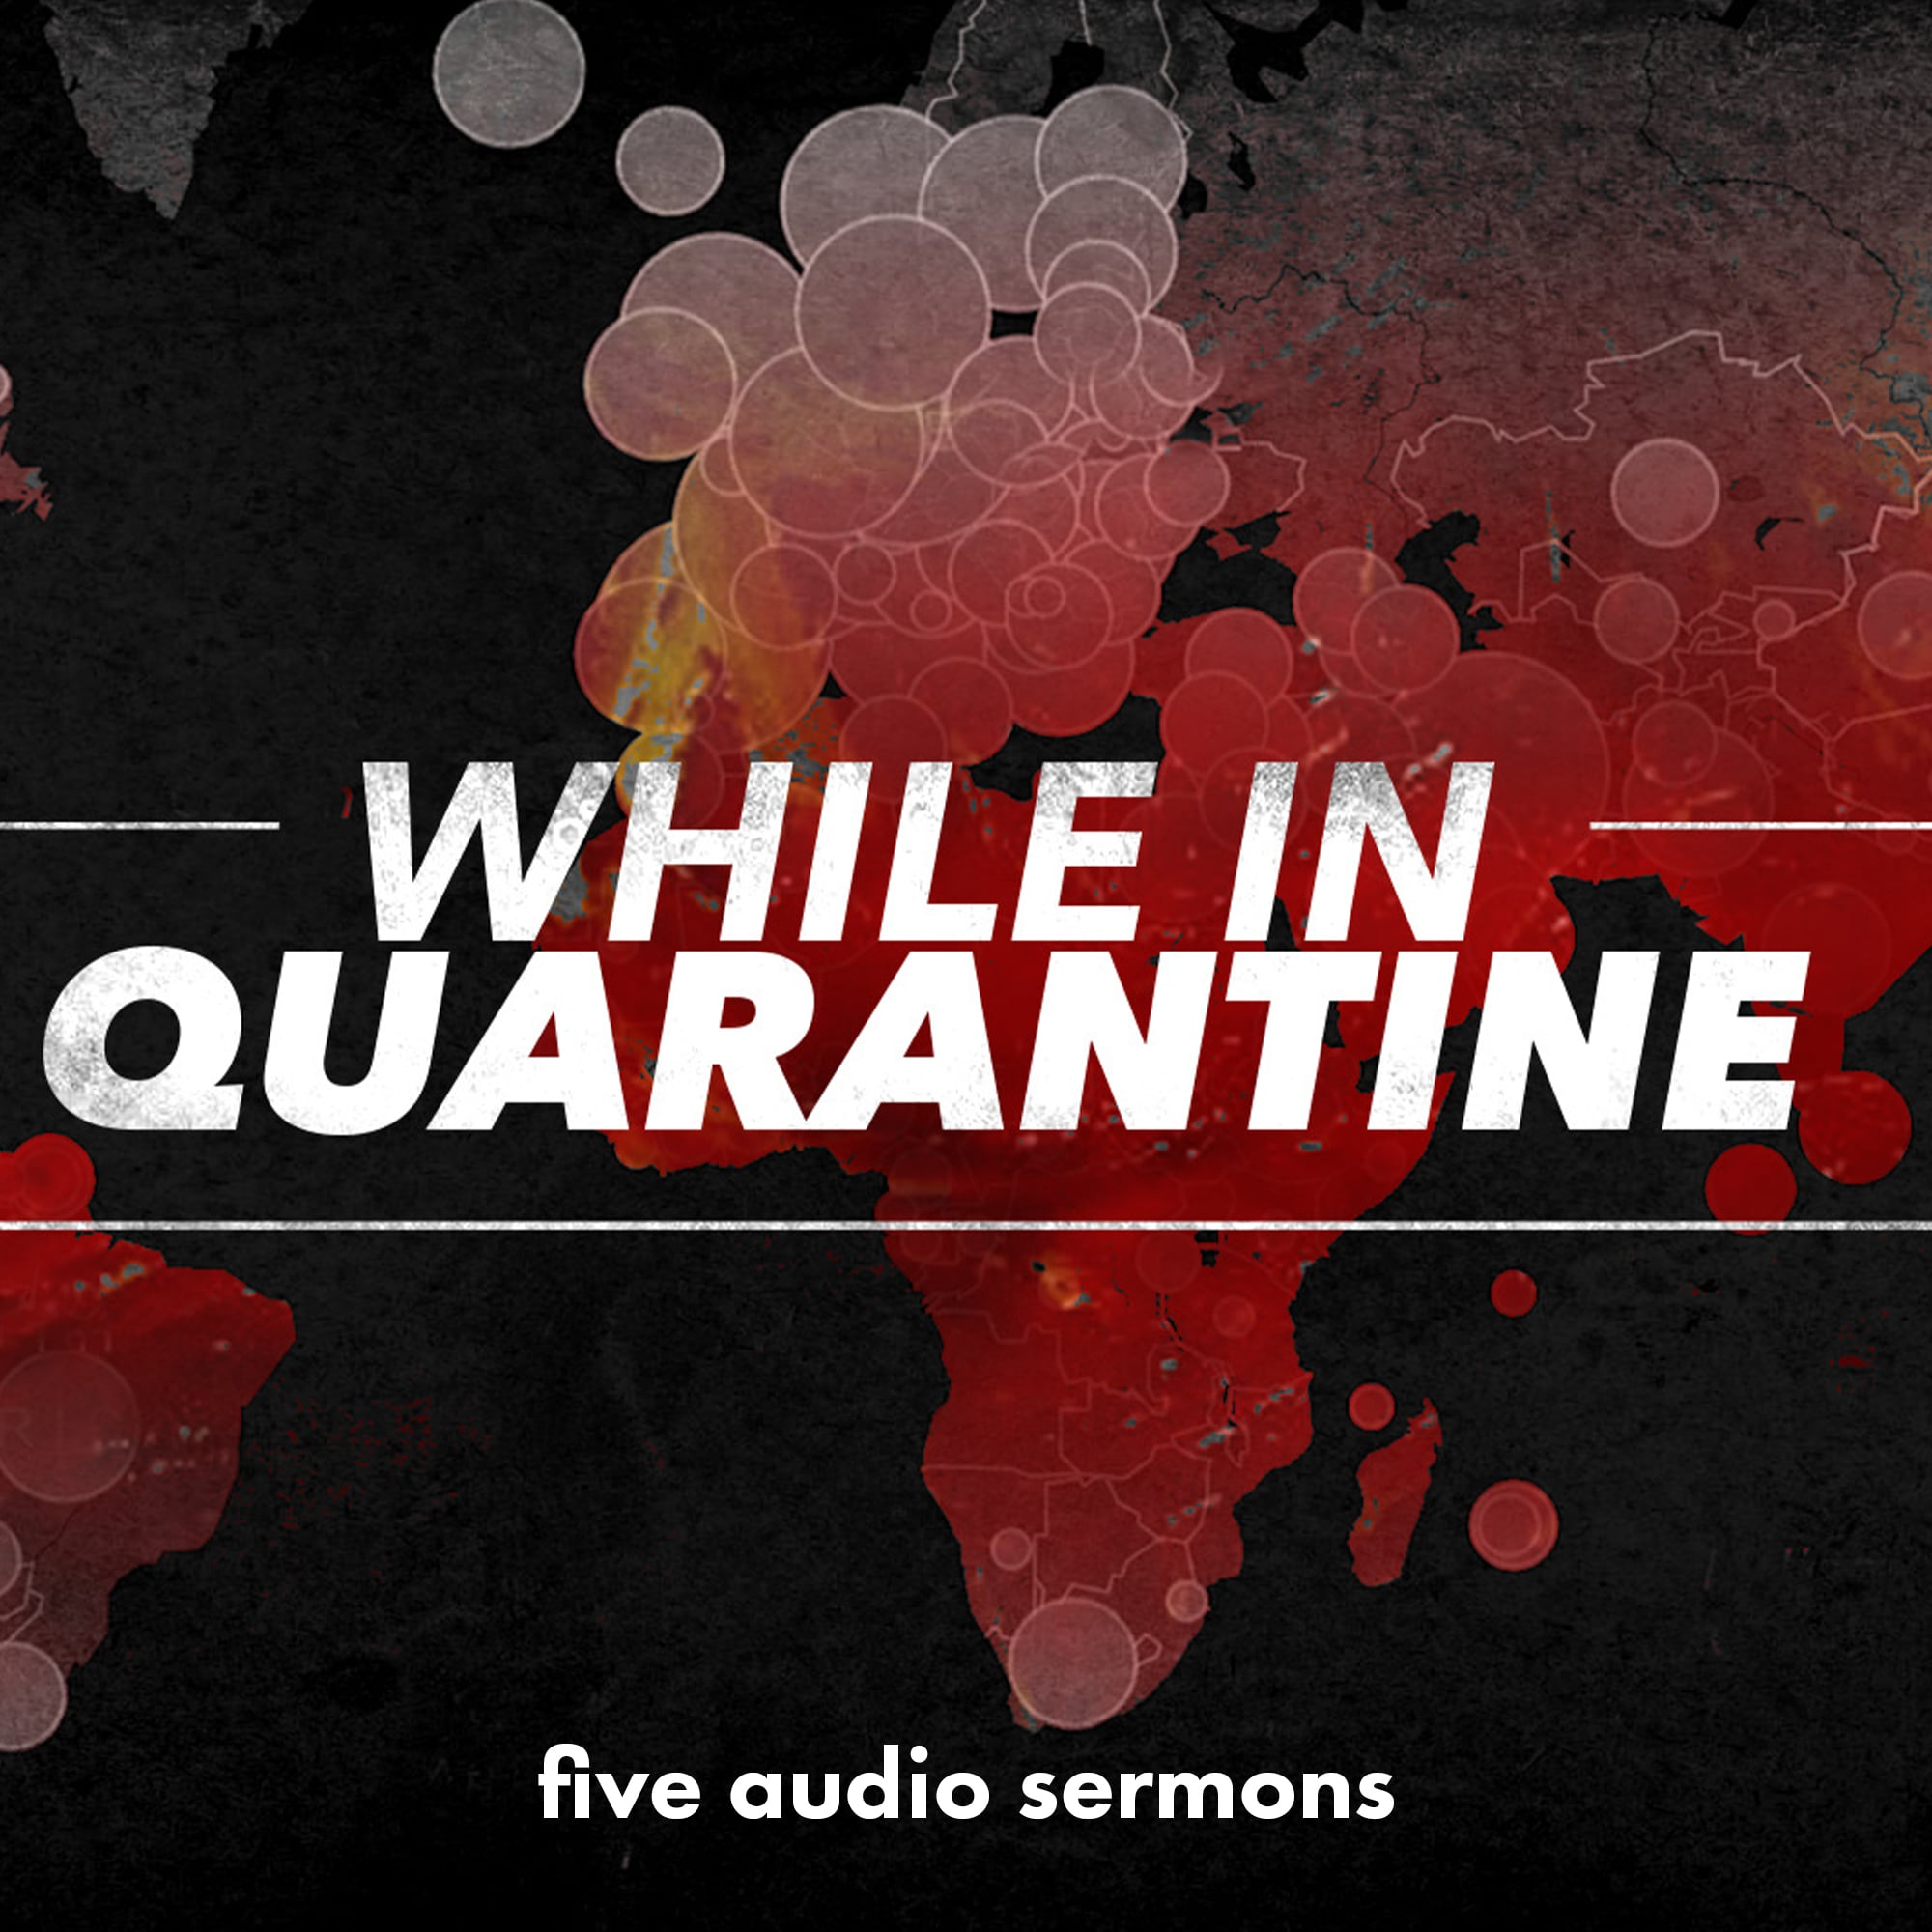 Series: While in Quarantine